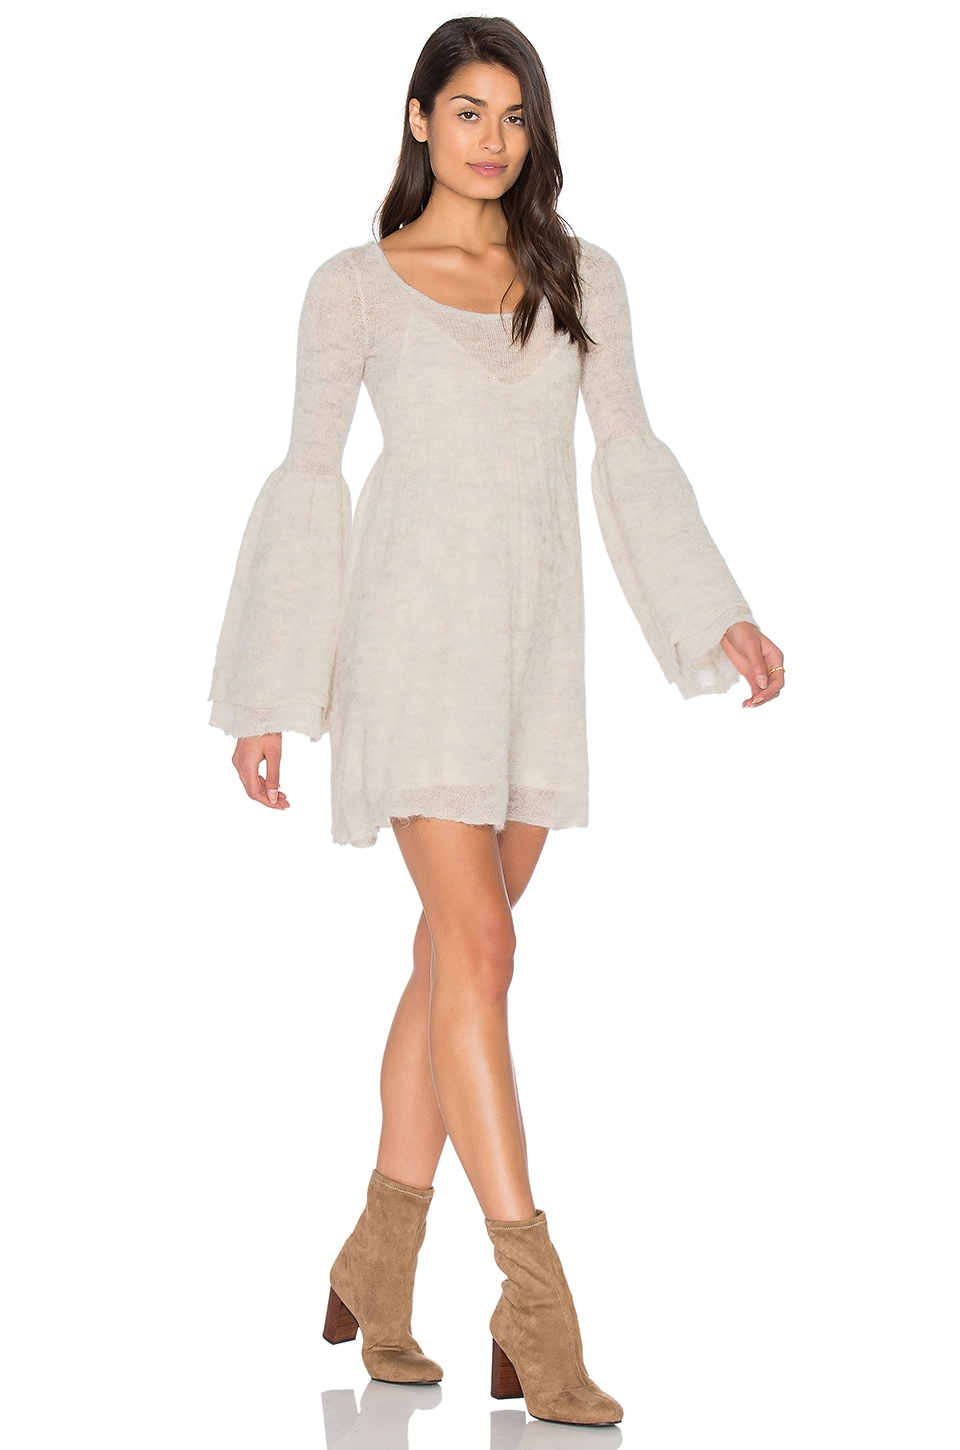 Free People Juliet Babydoll Dress in Ivory